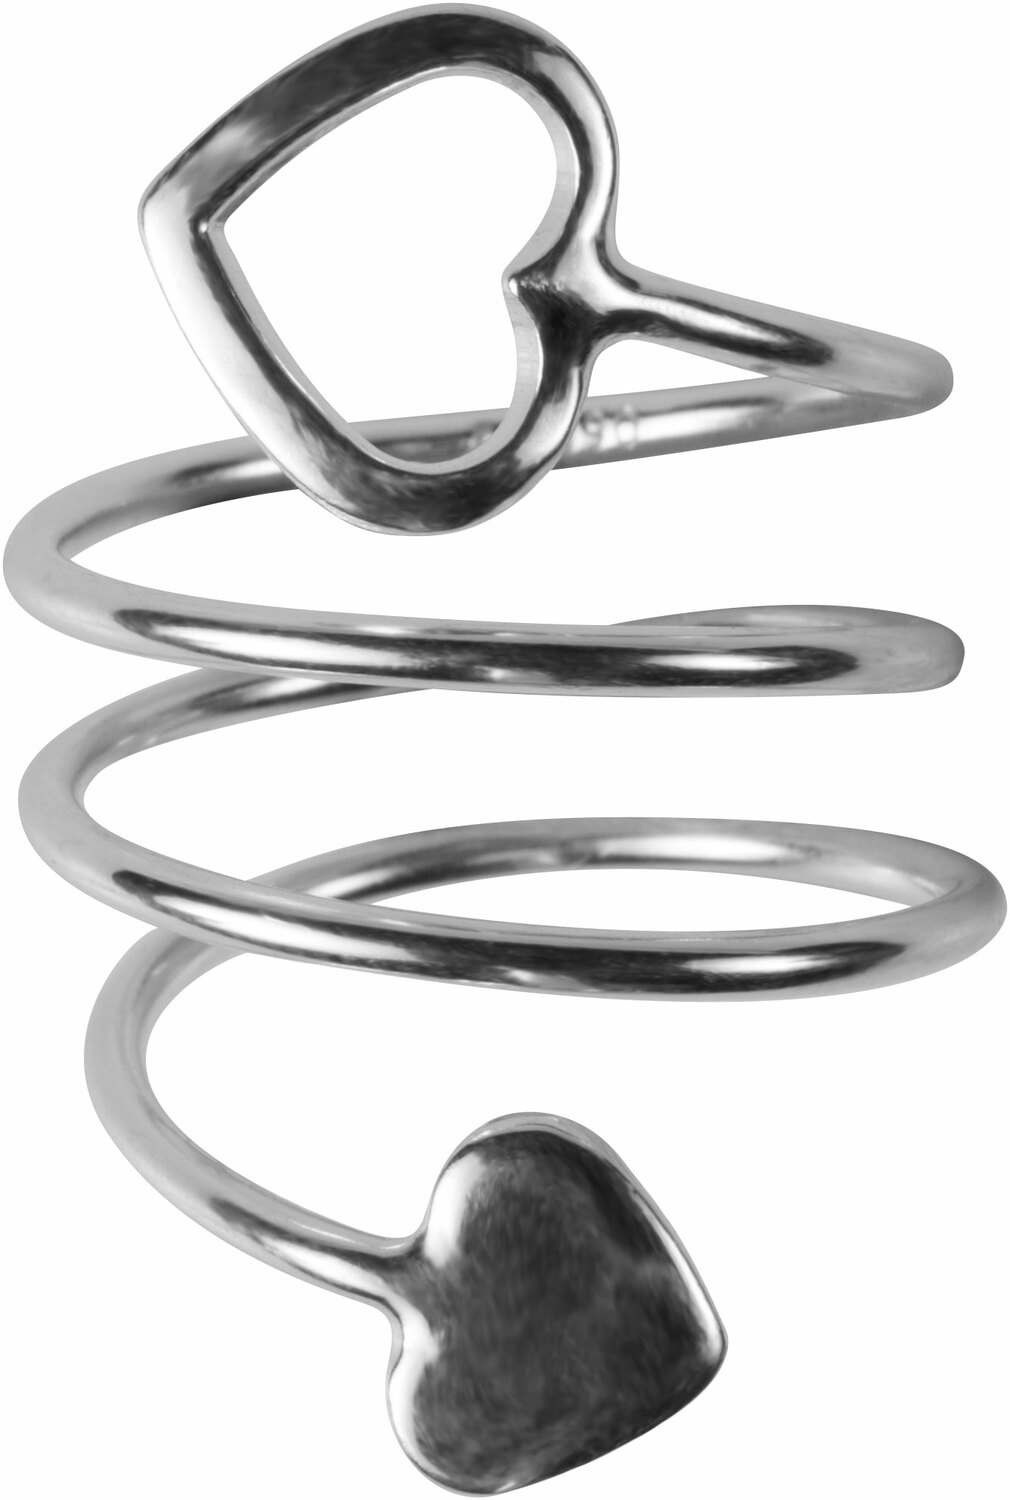 2 Coil Hearts by H2Z Spiral Rings - 2 Coil Hearts - Rhodium Spiral Adjustable Ring